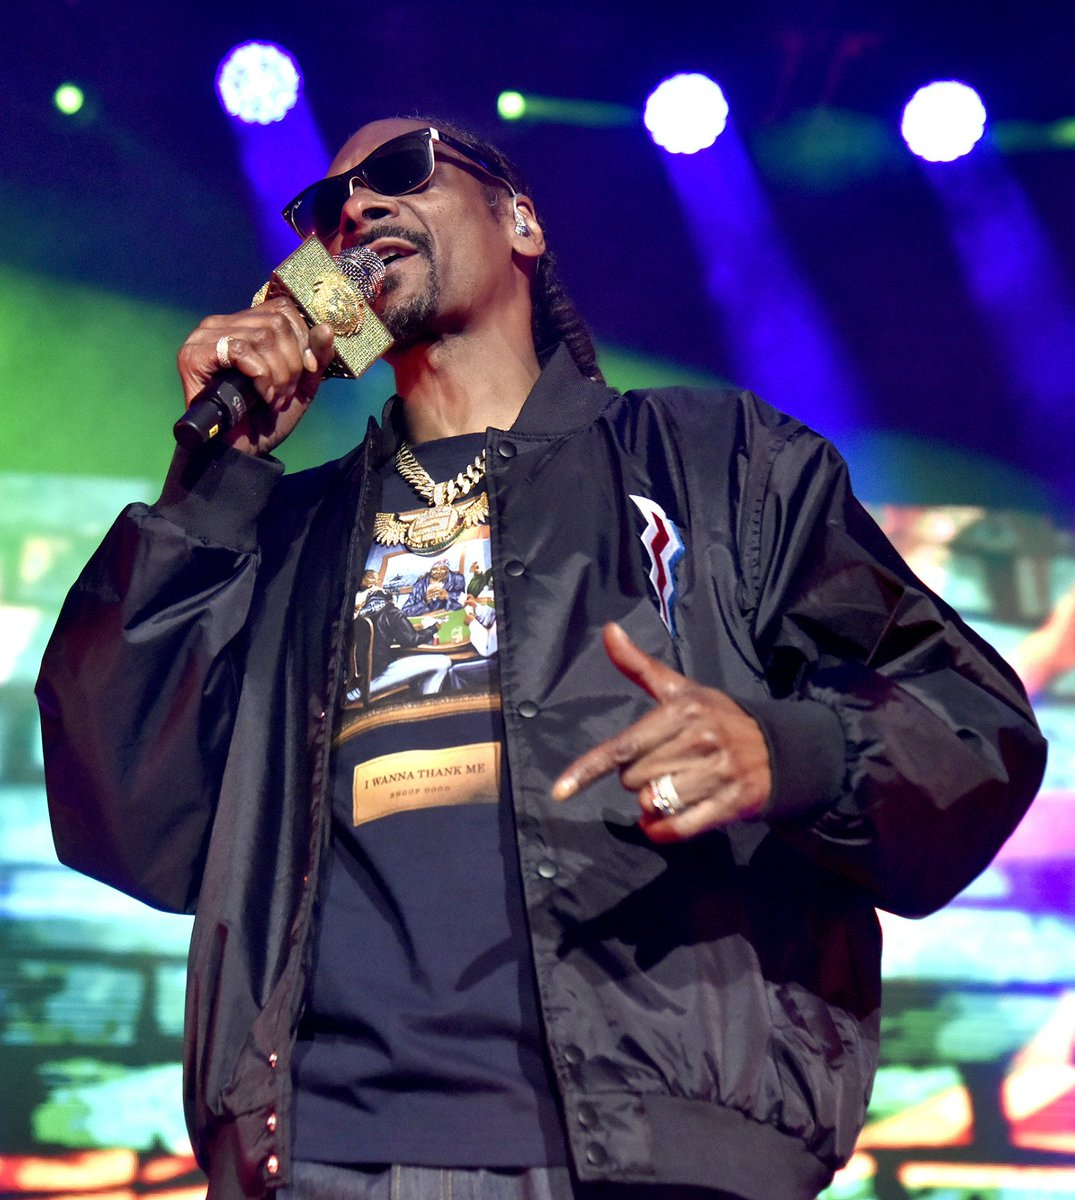 🎉 HAPPY BIRTHDAY, @SnoopDogg! 🎉 How many blunts do you think Uncle Snoop is smoking today? 🤣